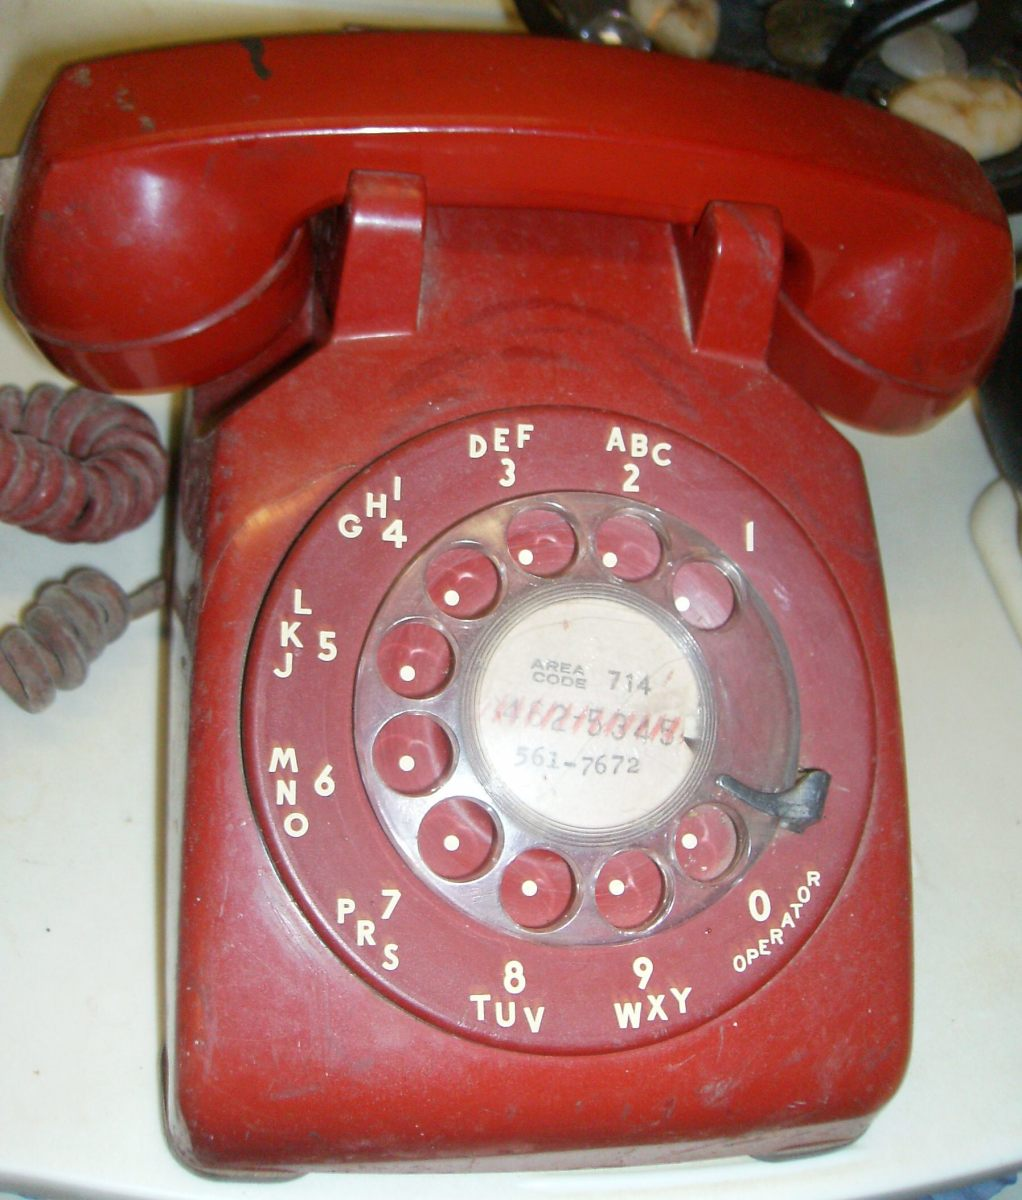 Advantages of Landline Phones - Should You Keep Your Home Telephone Service?